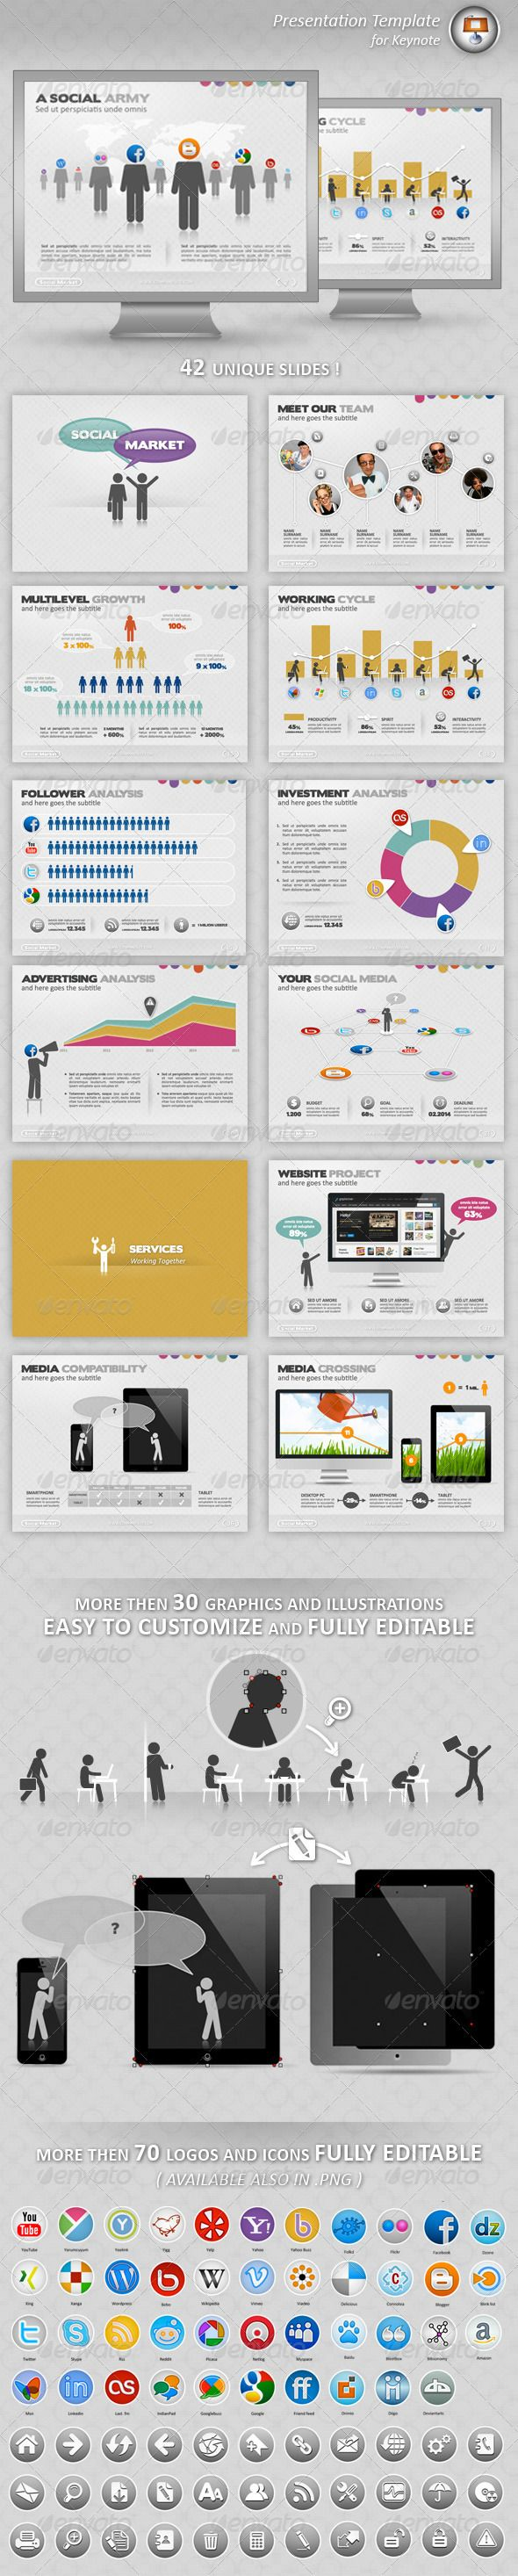 101 best Presentation images on Pinterest | Graph design, Page ...